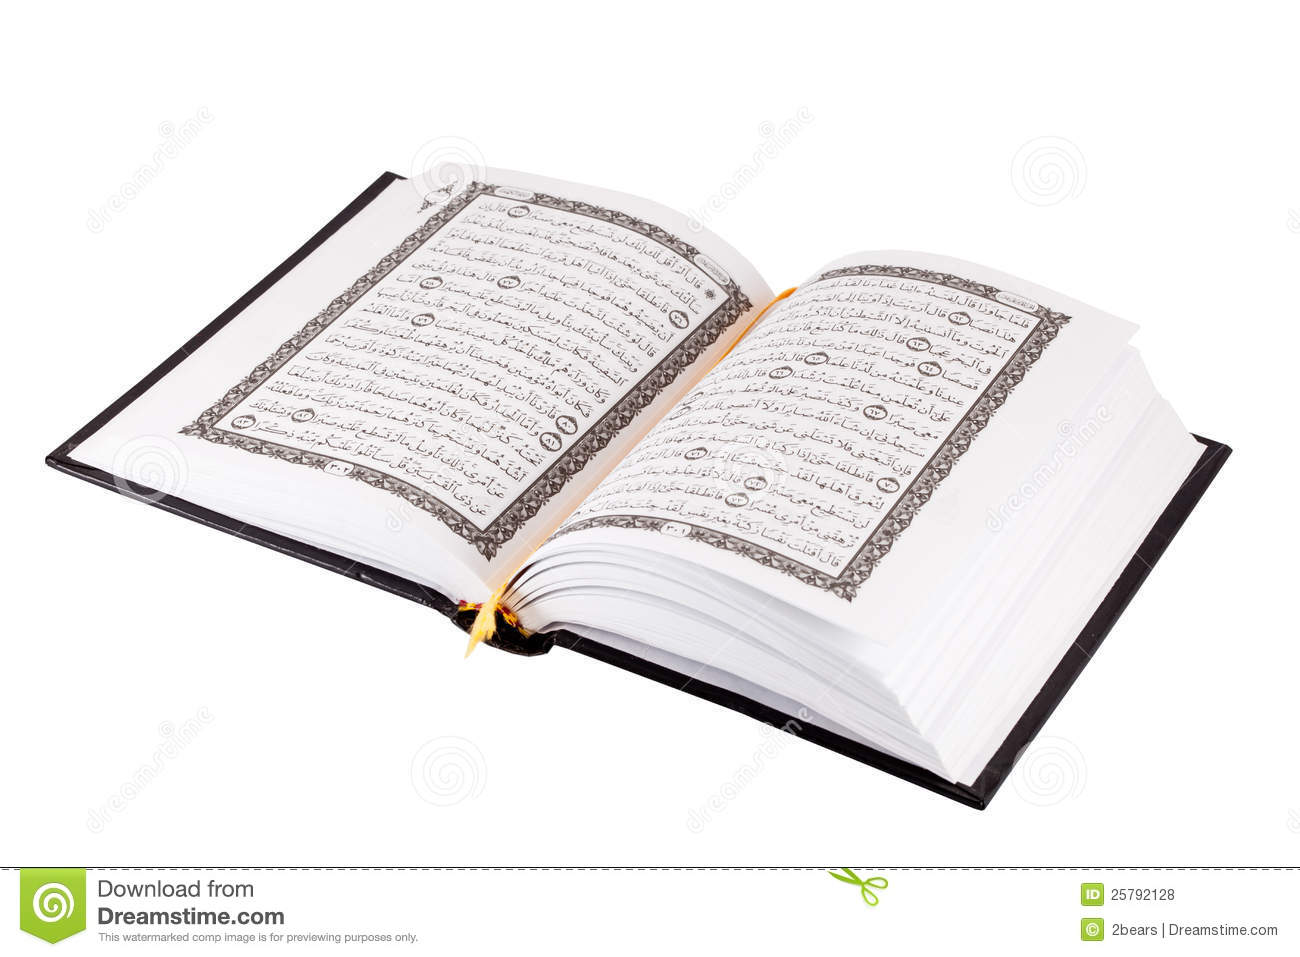 Citaten Quran Gratis : Holy quran book stock photo image of rows isolated